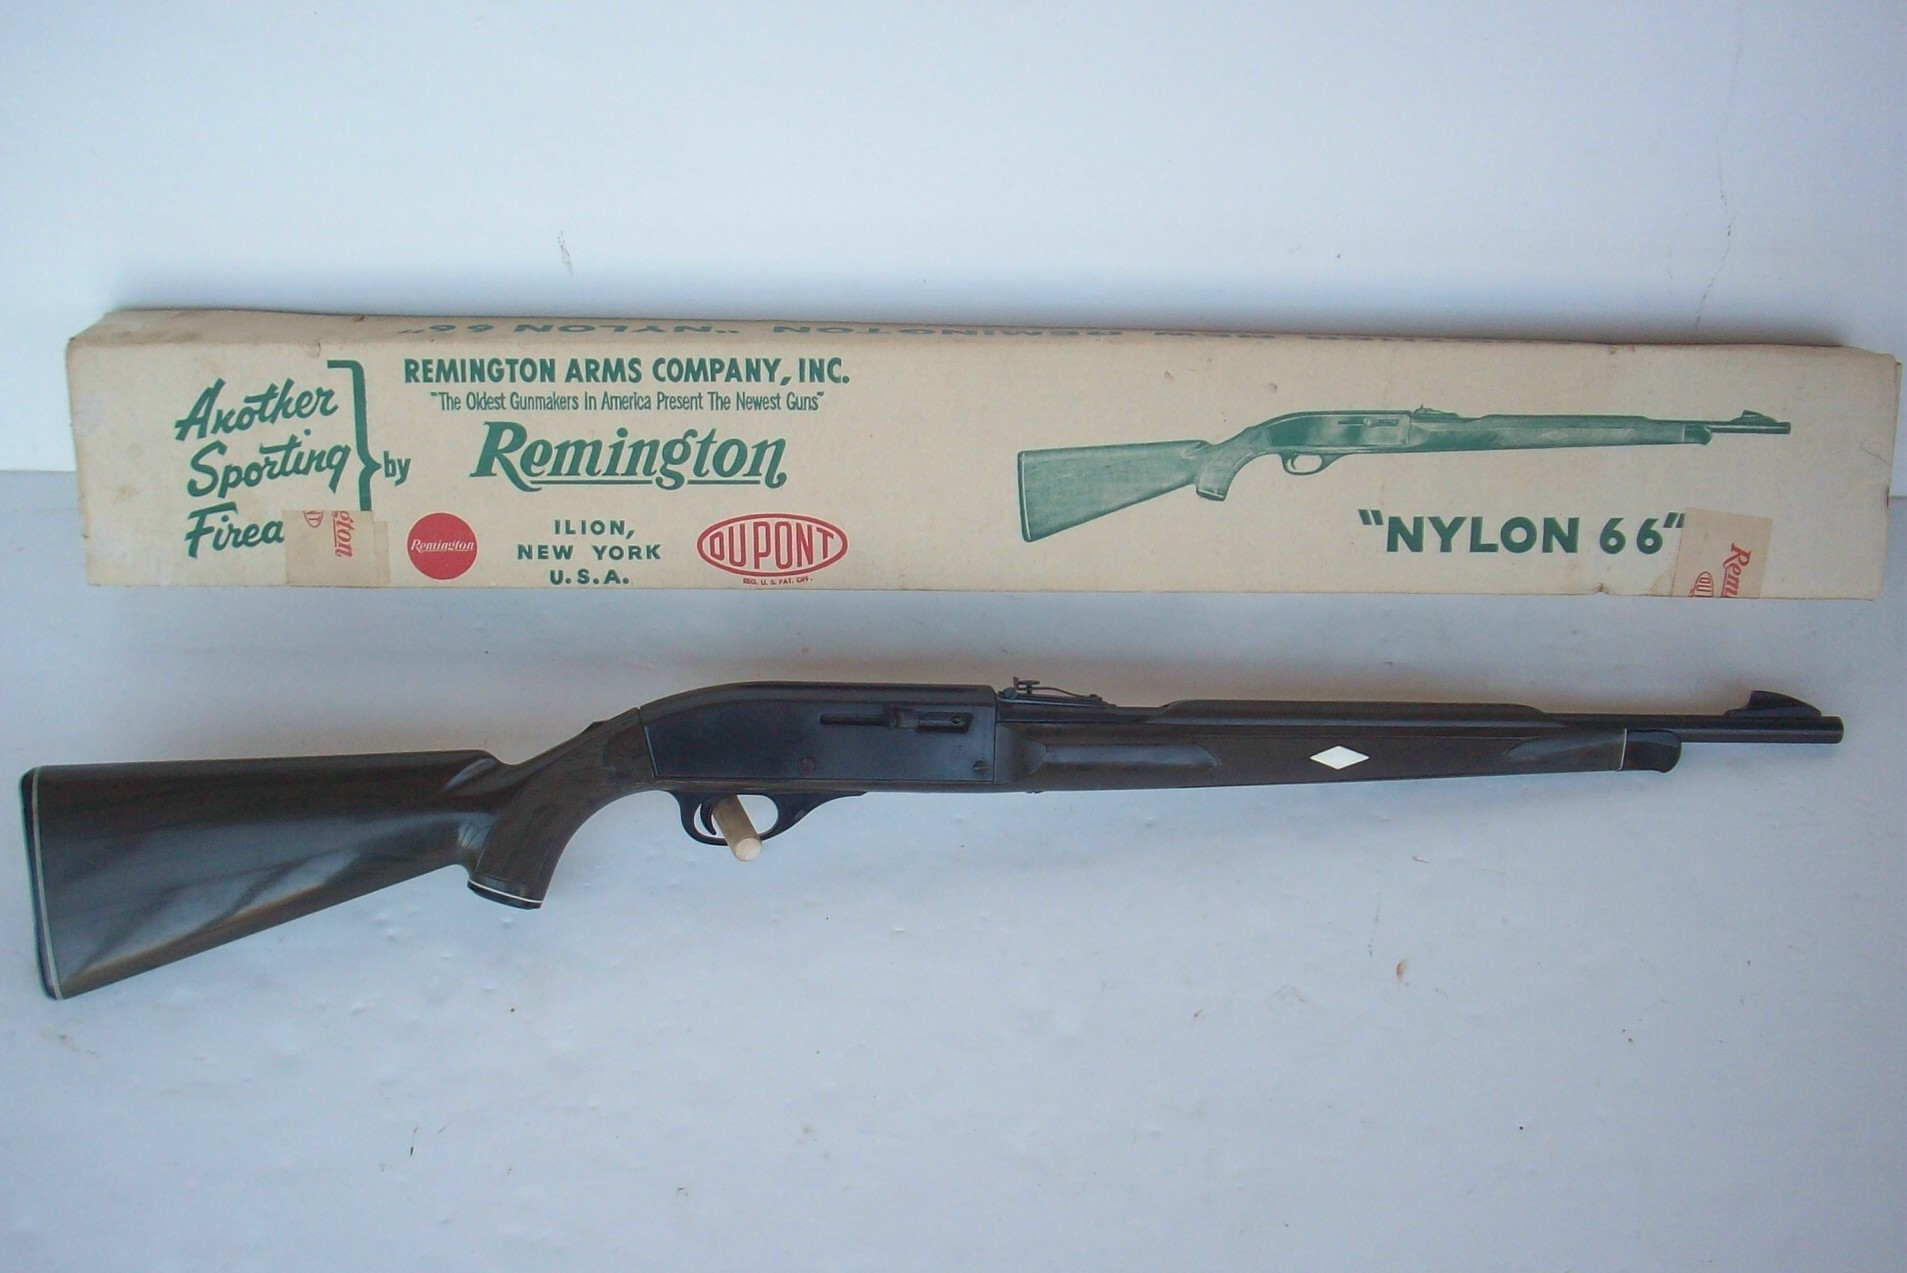 hight resolution of remington nylon 66 semi auto rimfire rifles click here to see close up image of an apache black rifle